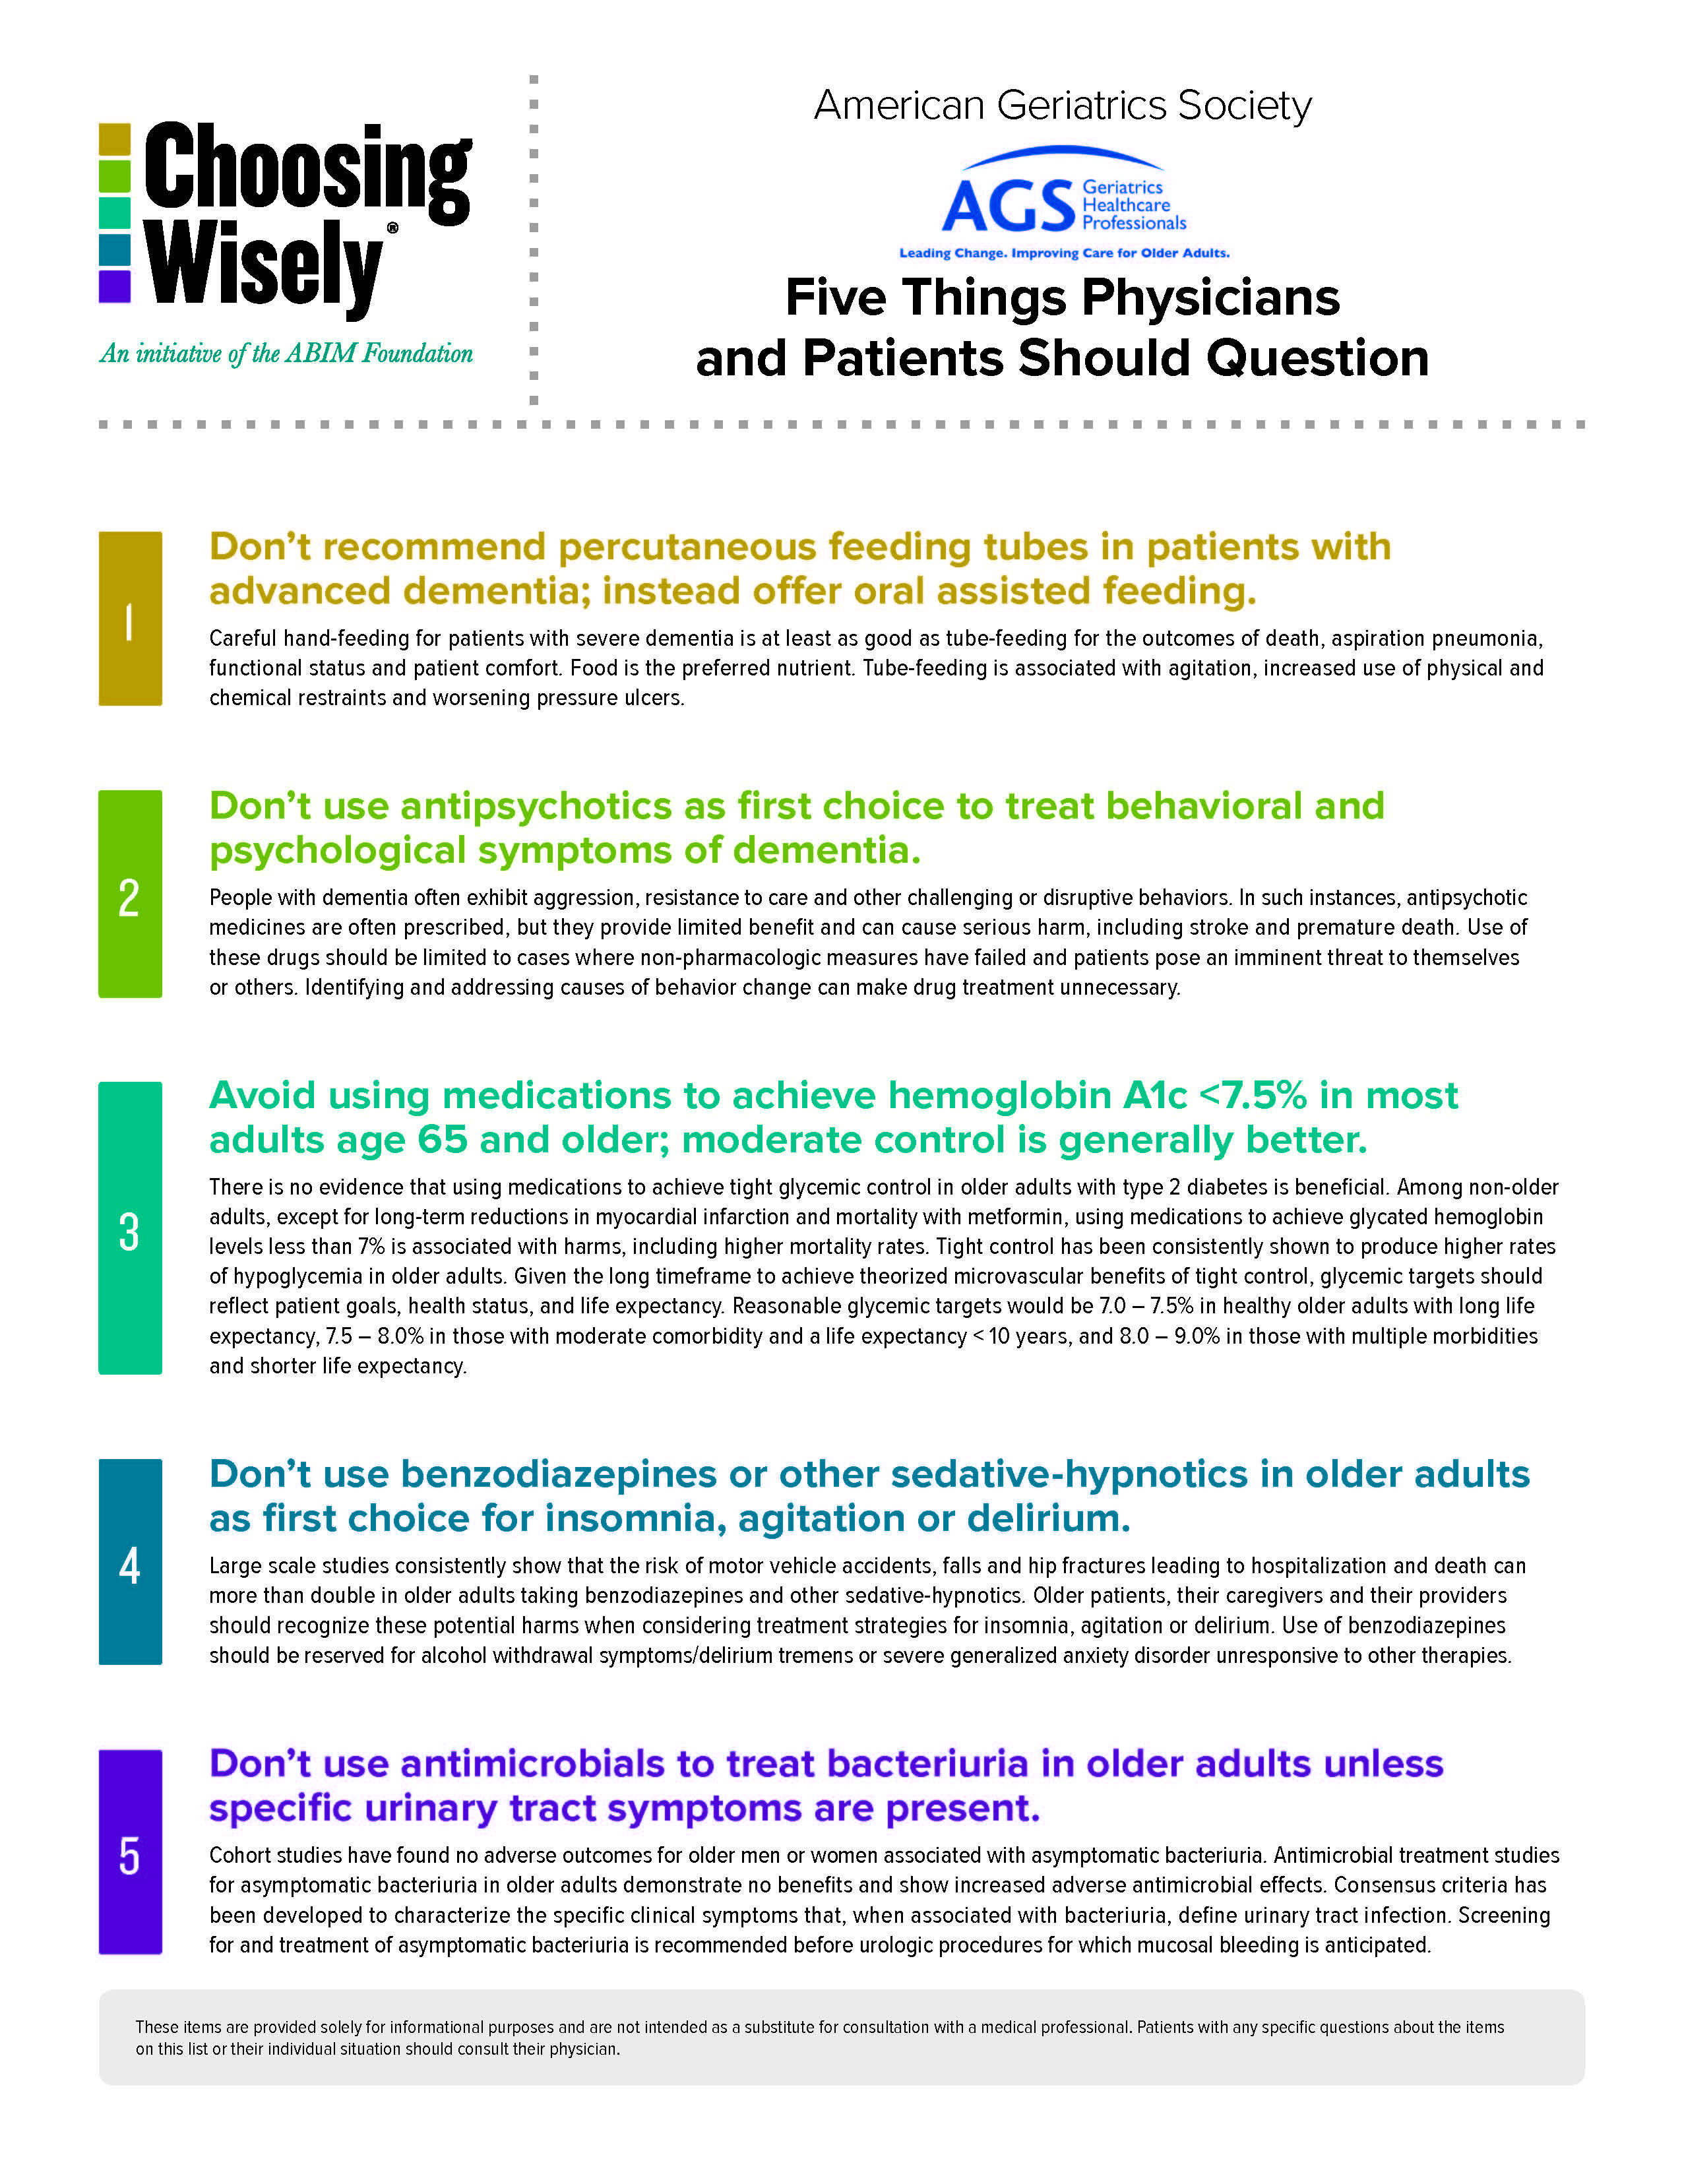 AGS' Five Things Healthcare Providers and Patients Should